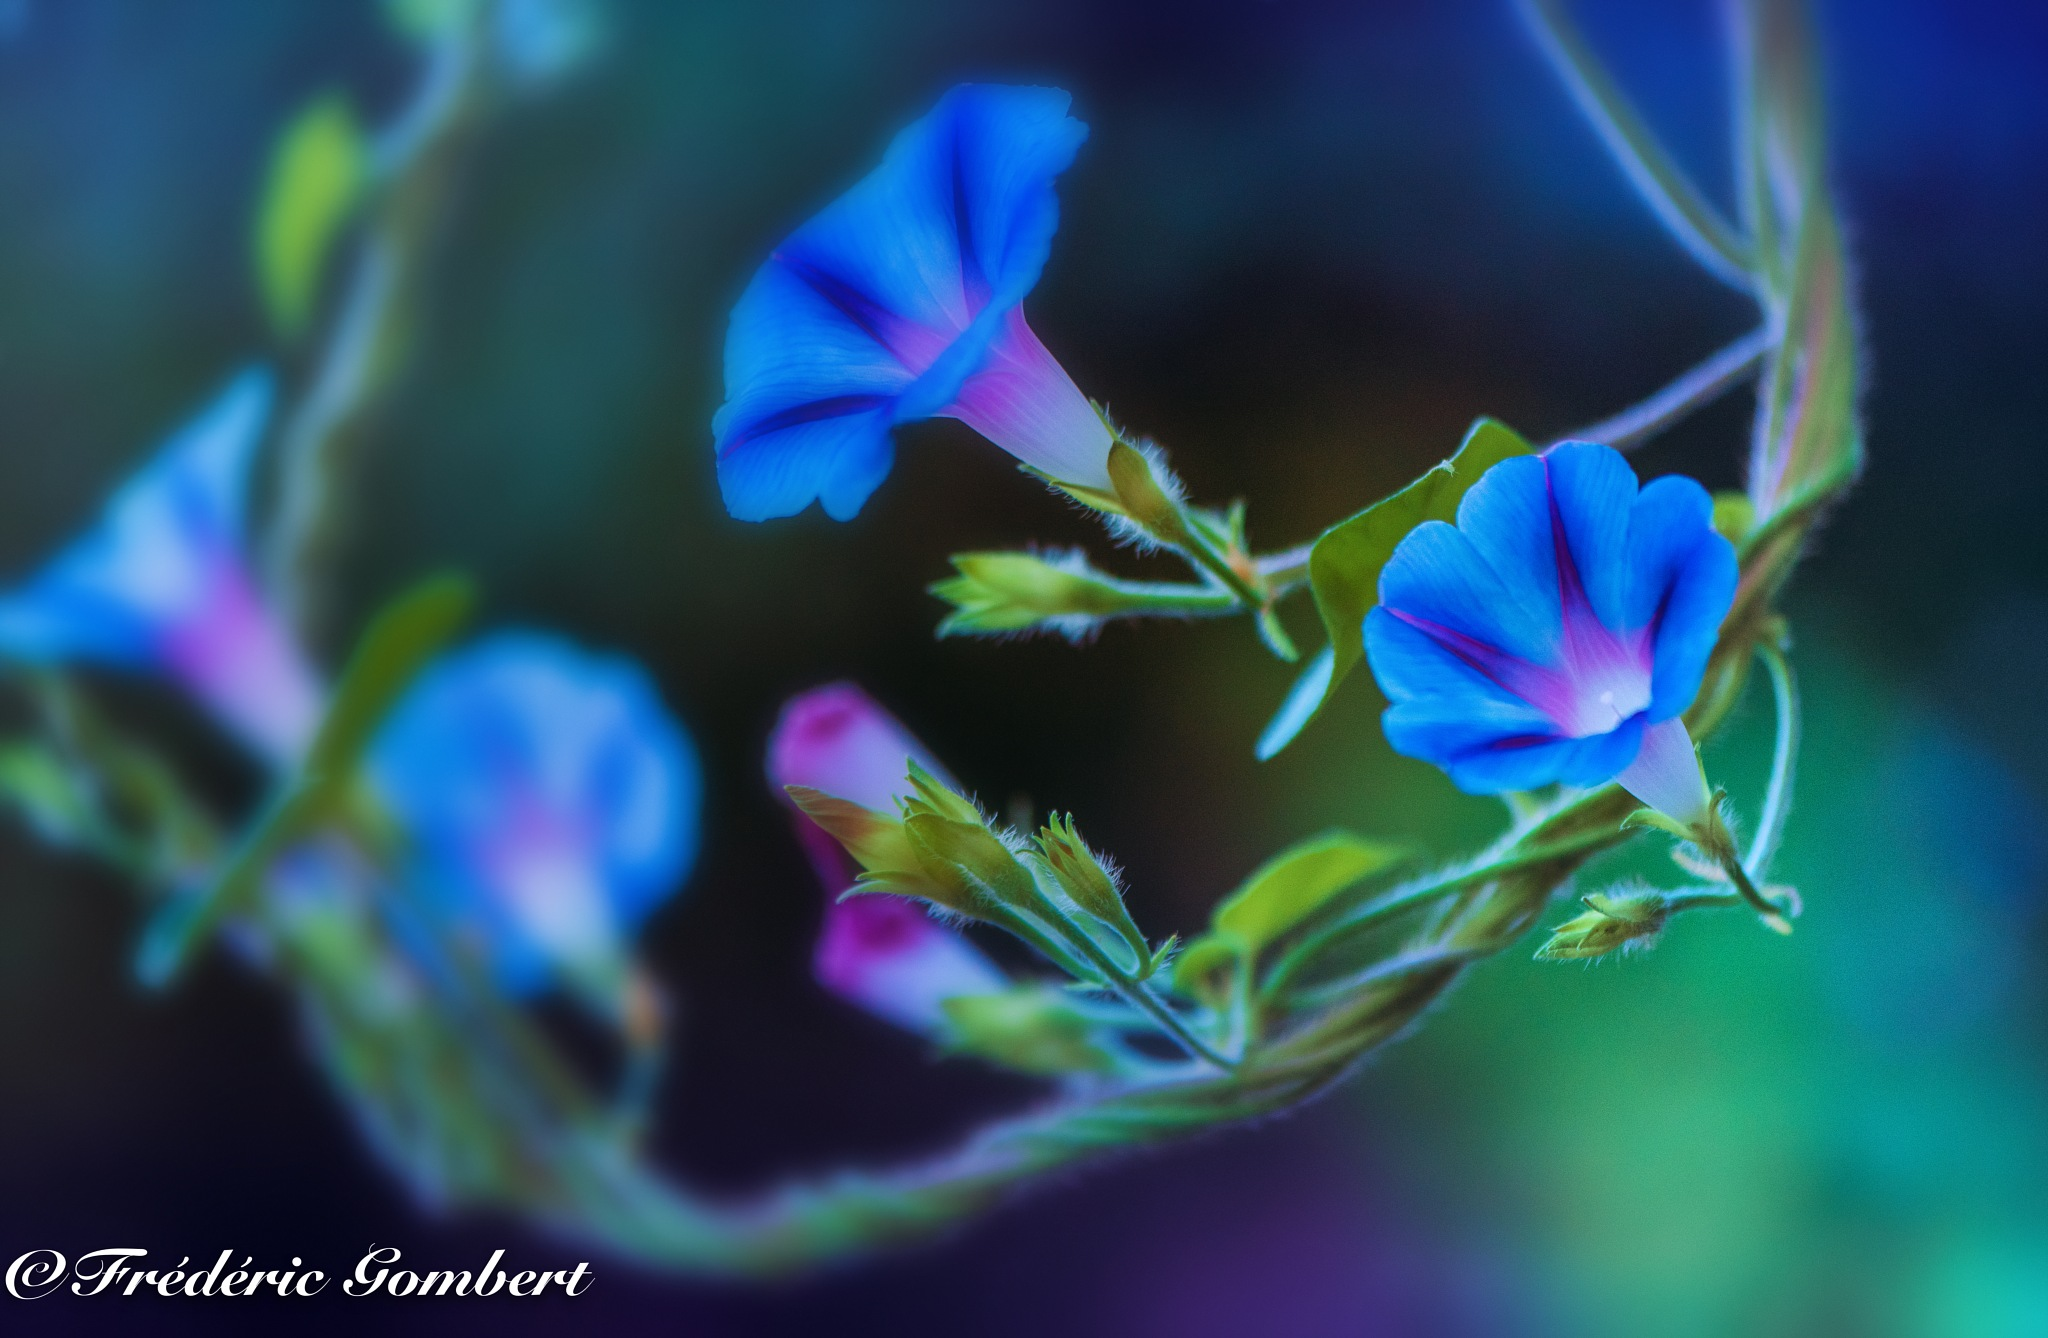 Swing life by Frederic Gombert